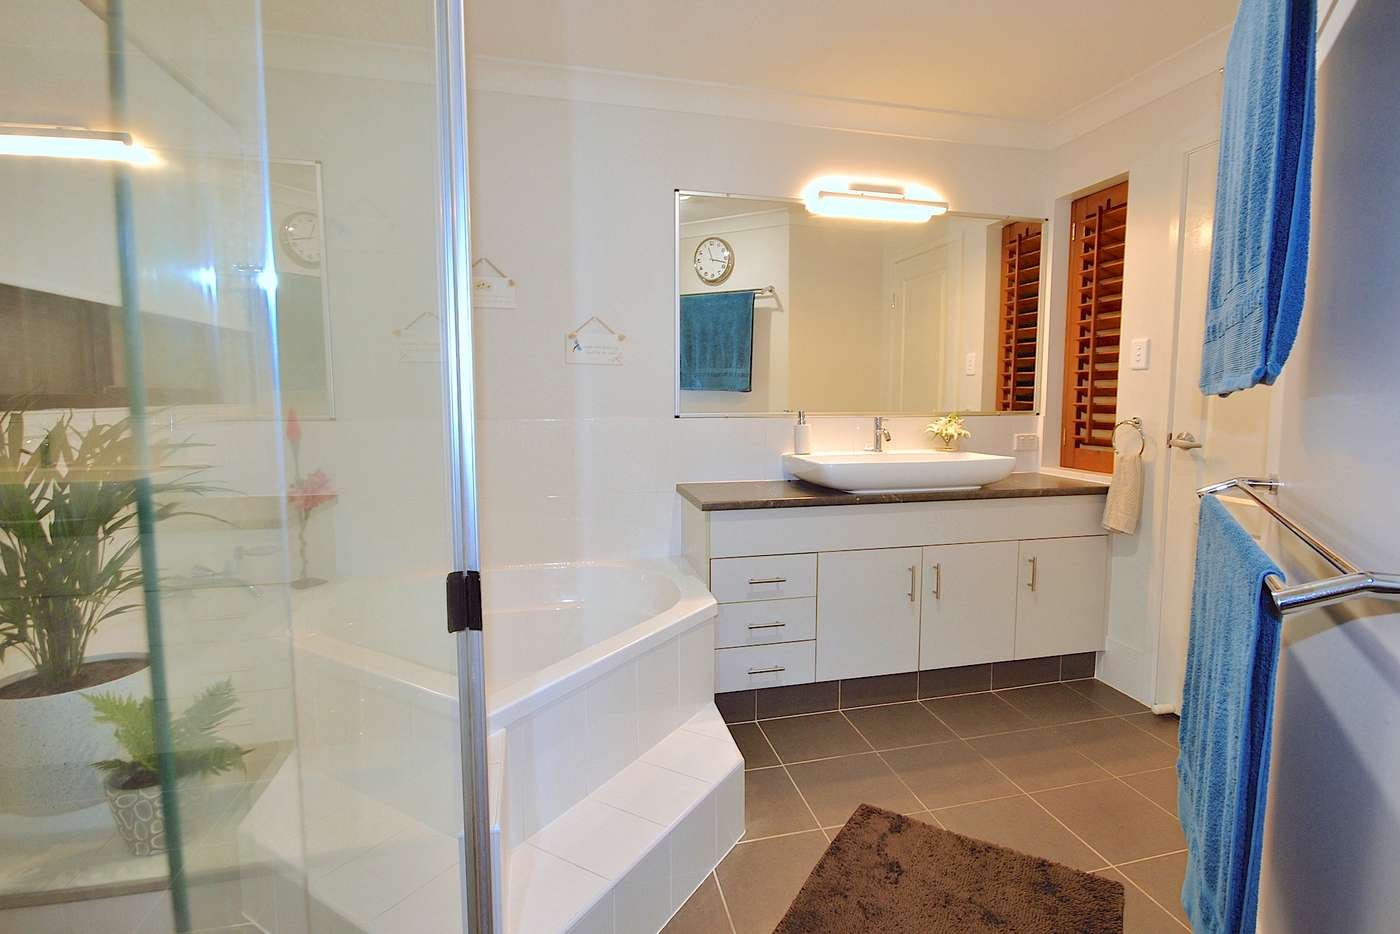 Sixth view of Homely house listing, 6 Whale Circuit, Bargara QLD 4670